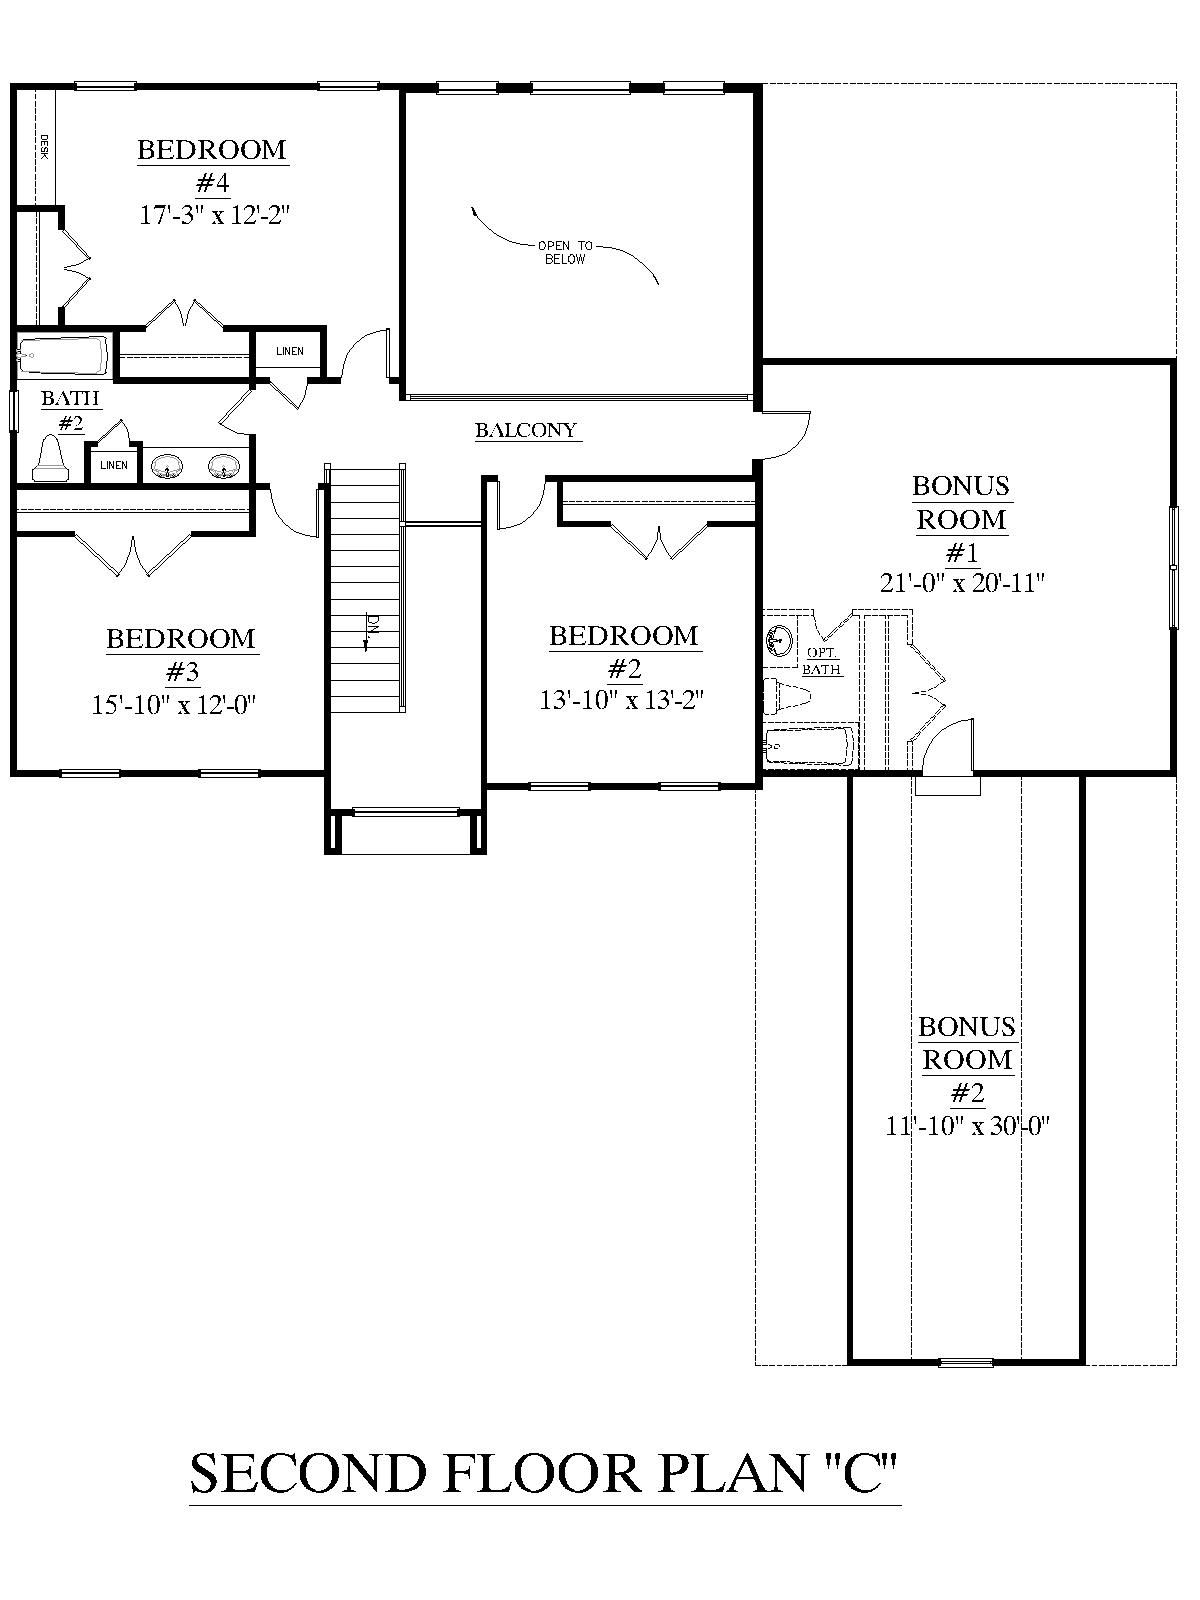 House plan 2995 c springdale c second floor plan for House plans with bonus room